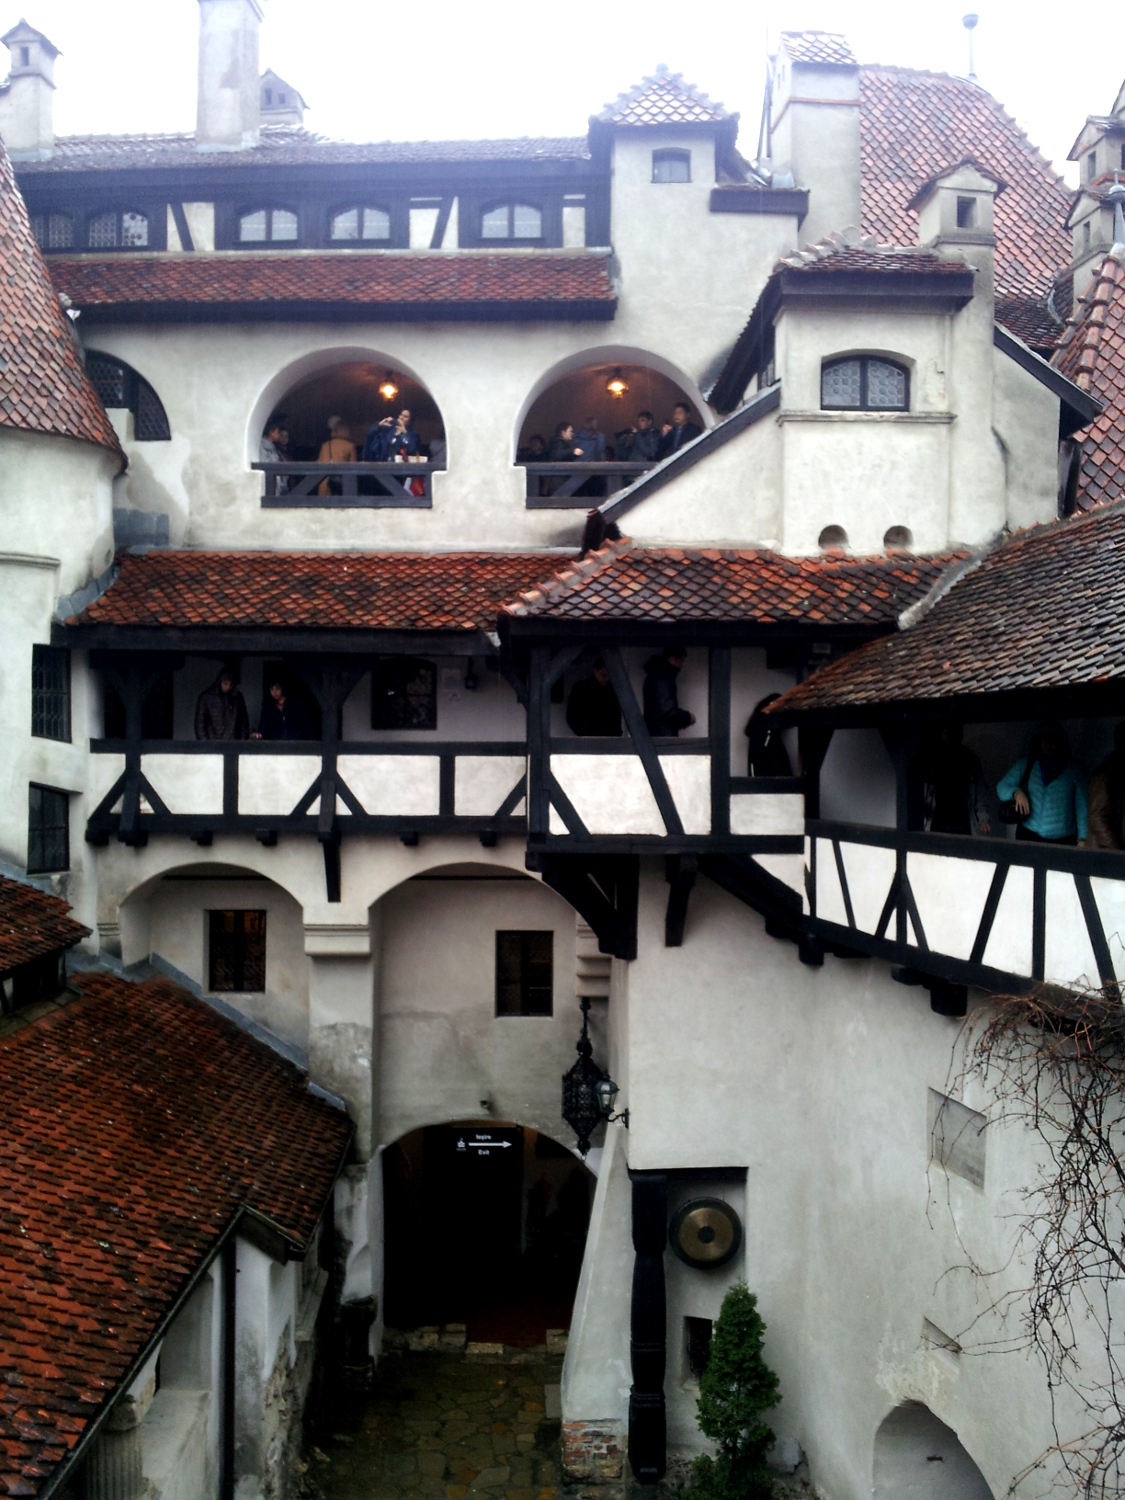 Bran Castle - view of the interior garden - another side